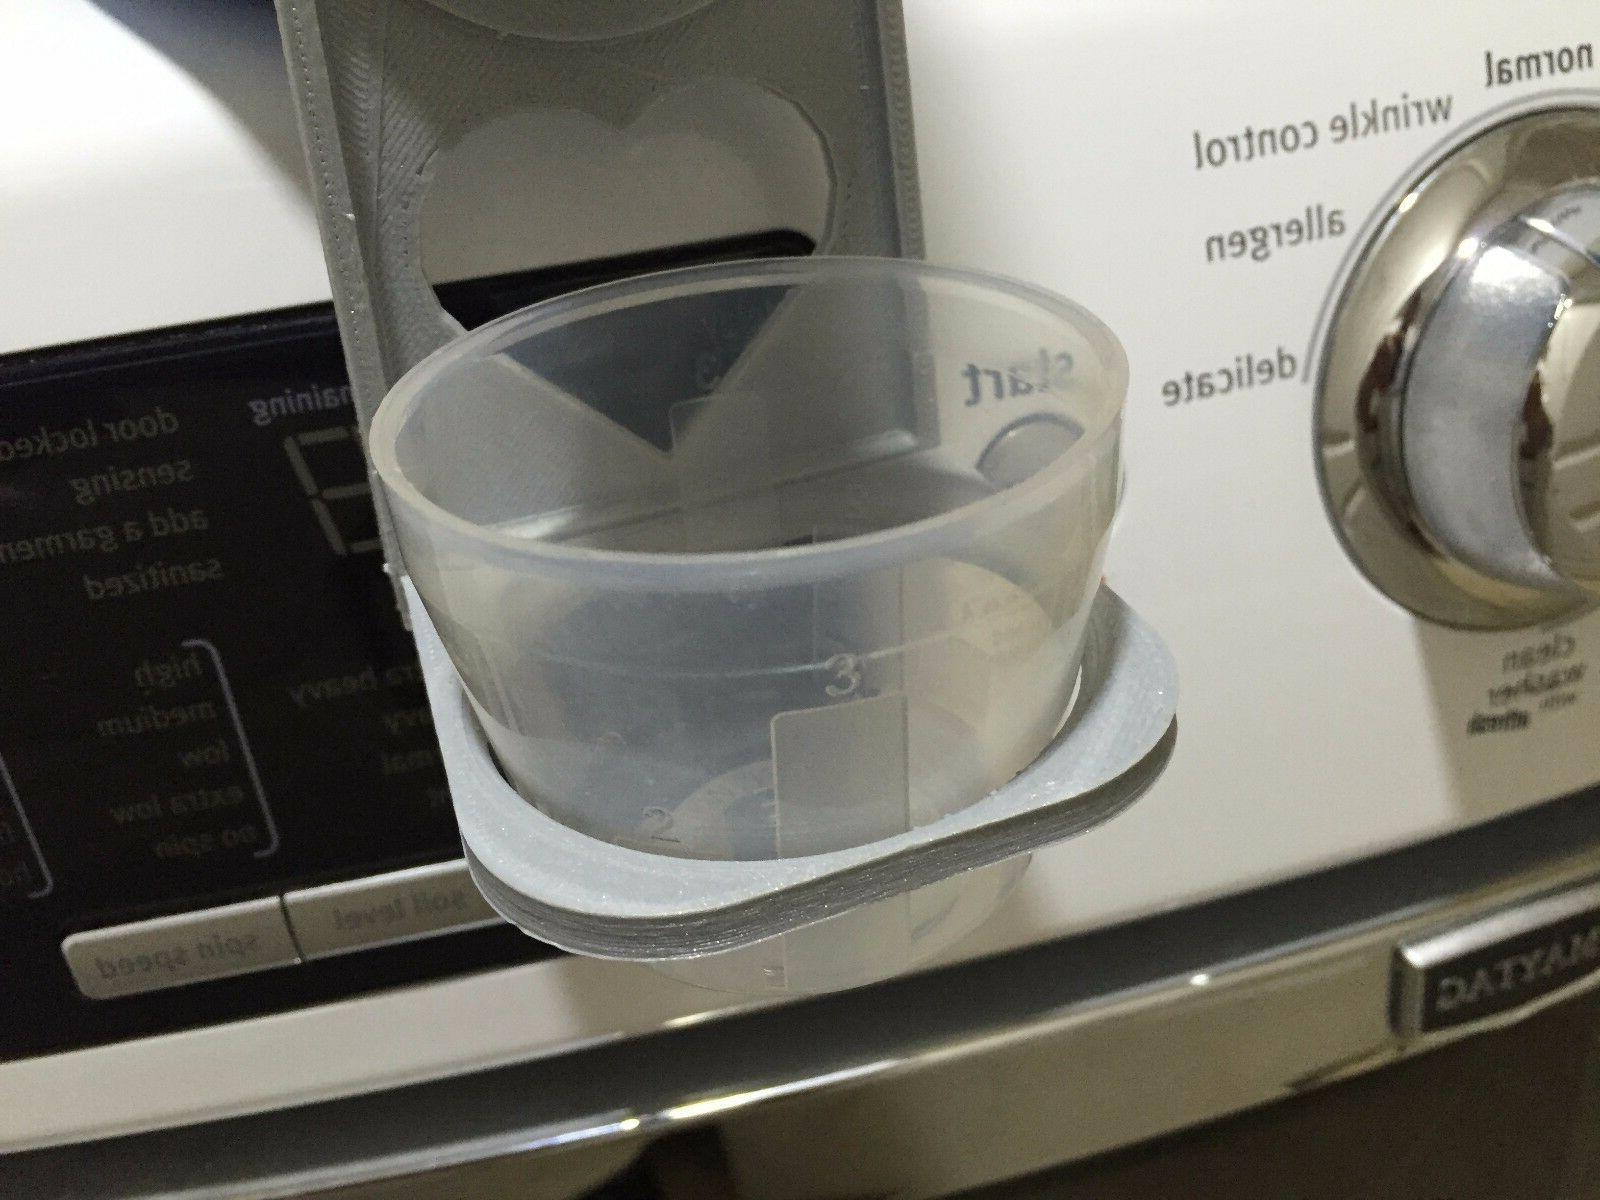 Laundry Detergent and Softener Gadget Holder To Prevent Spill